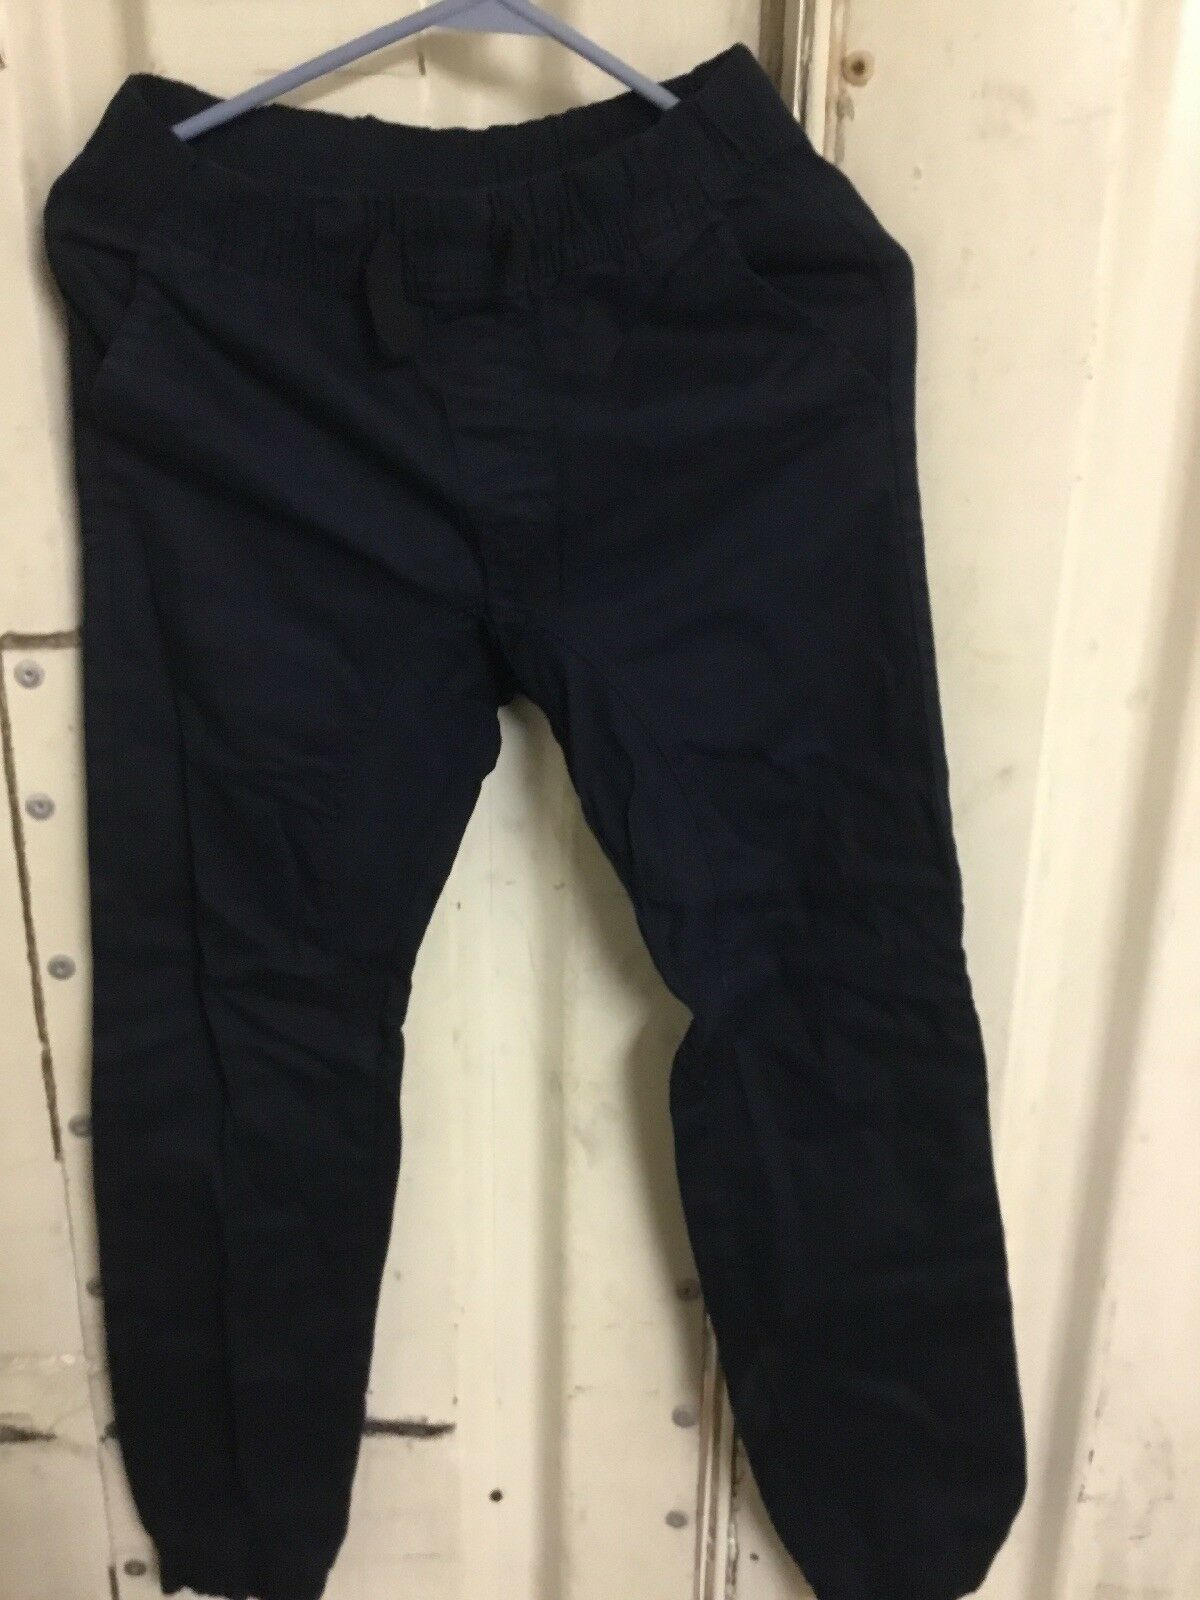 Primary image for Southpole Boys' Big Jogger Pants in Basic Stretch Twill Fabric Navy Blue Medium